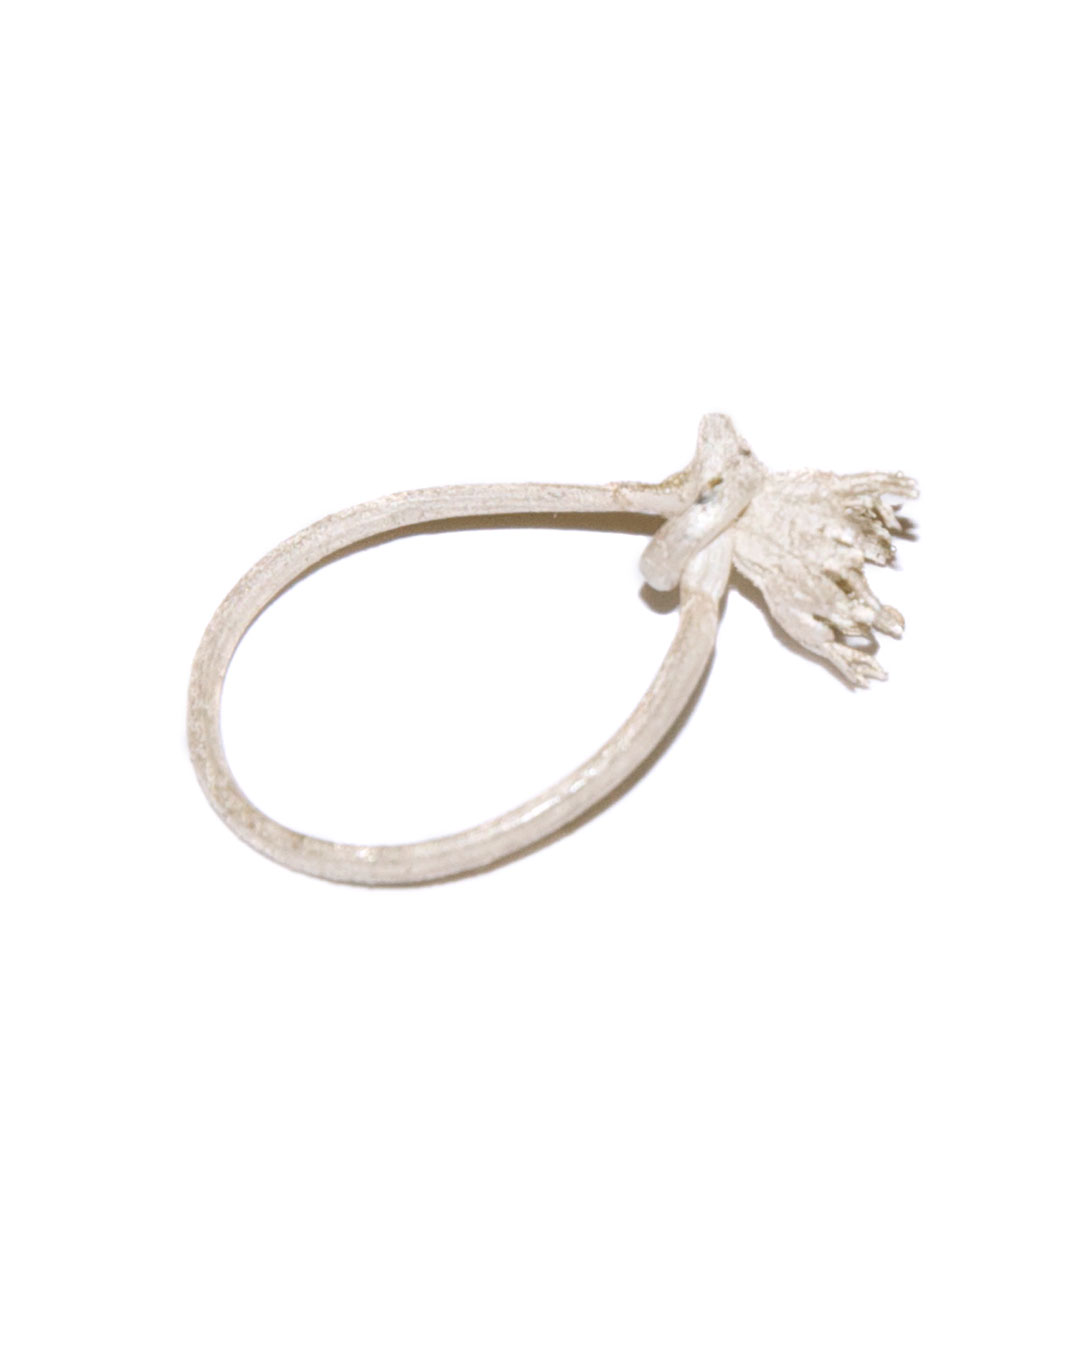 Carla Nuis, Madeliefje, 2005, ring; silver, 33 x 19 x 8 mm, €100